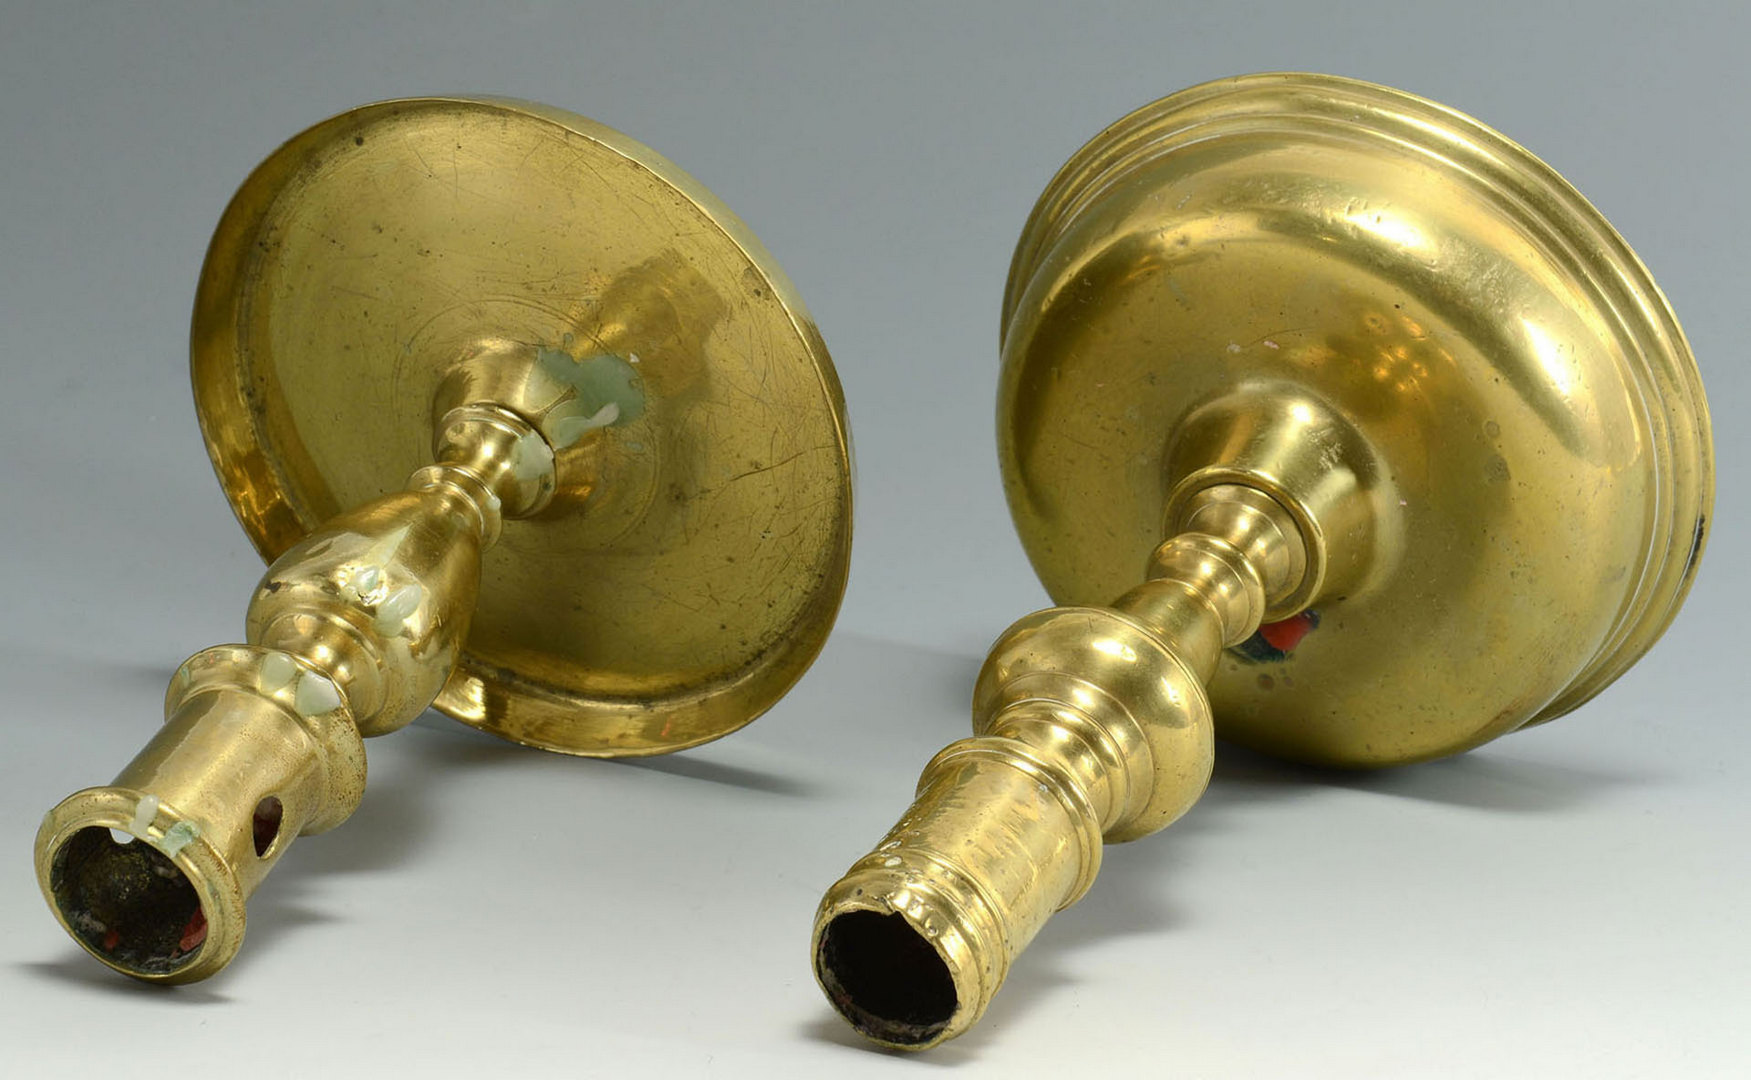 Lot 32: Four 17th c. English Brass Candlesticks